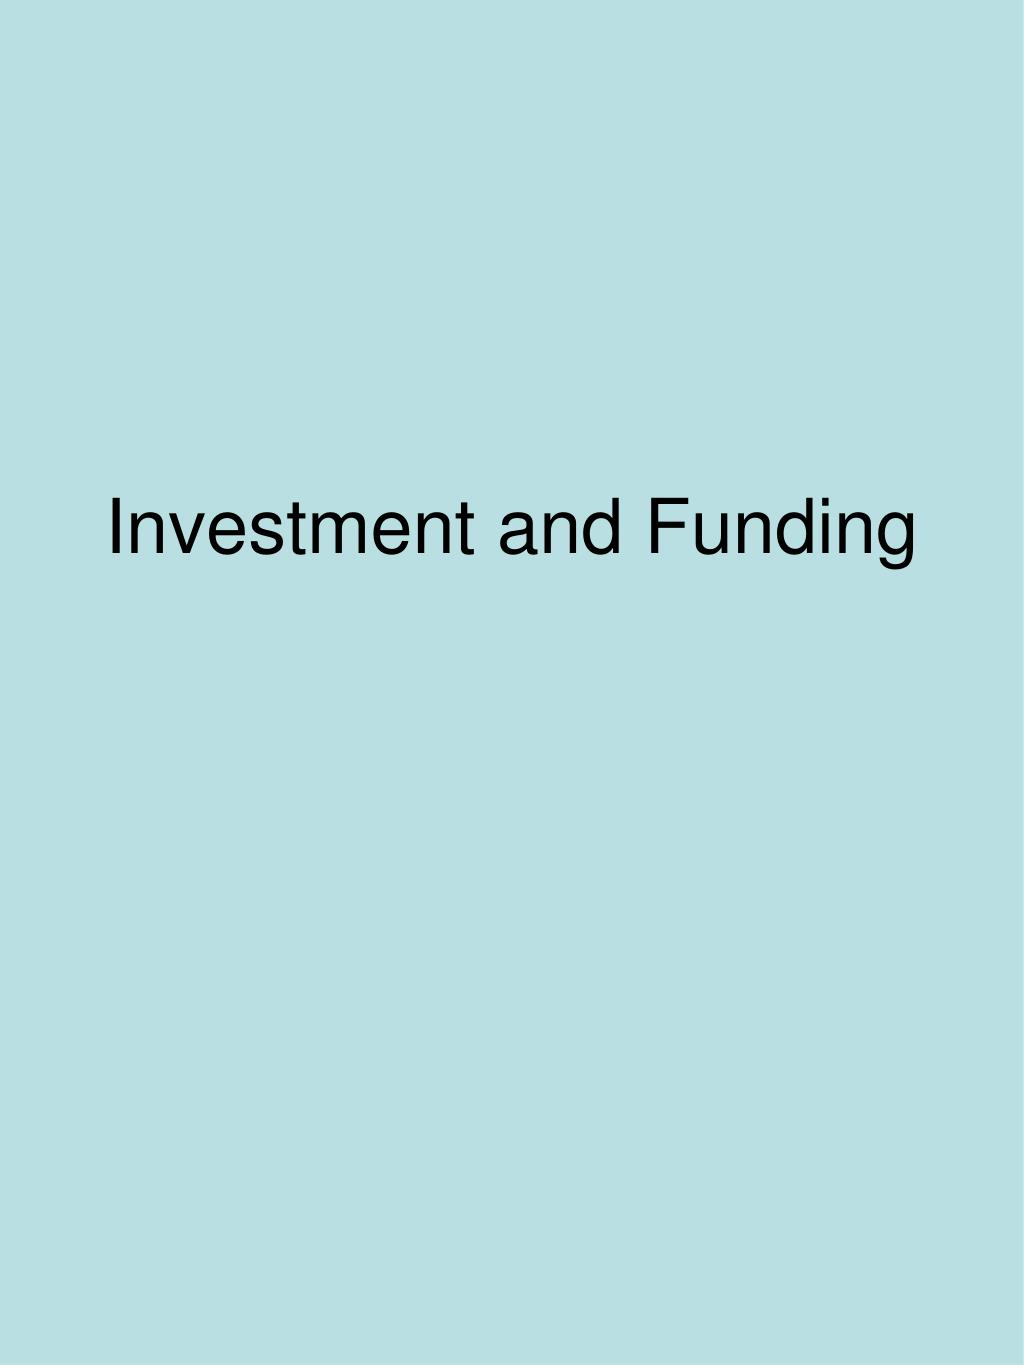 Investment and Funding